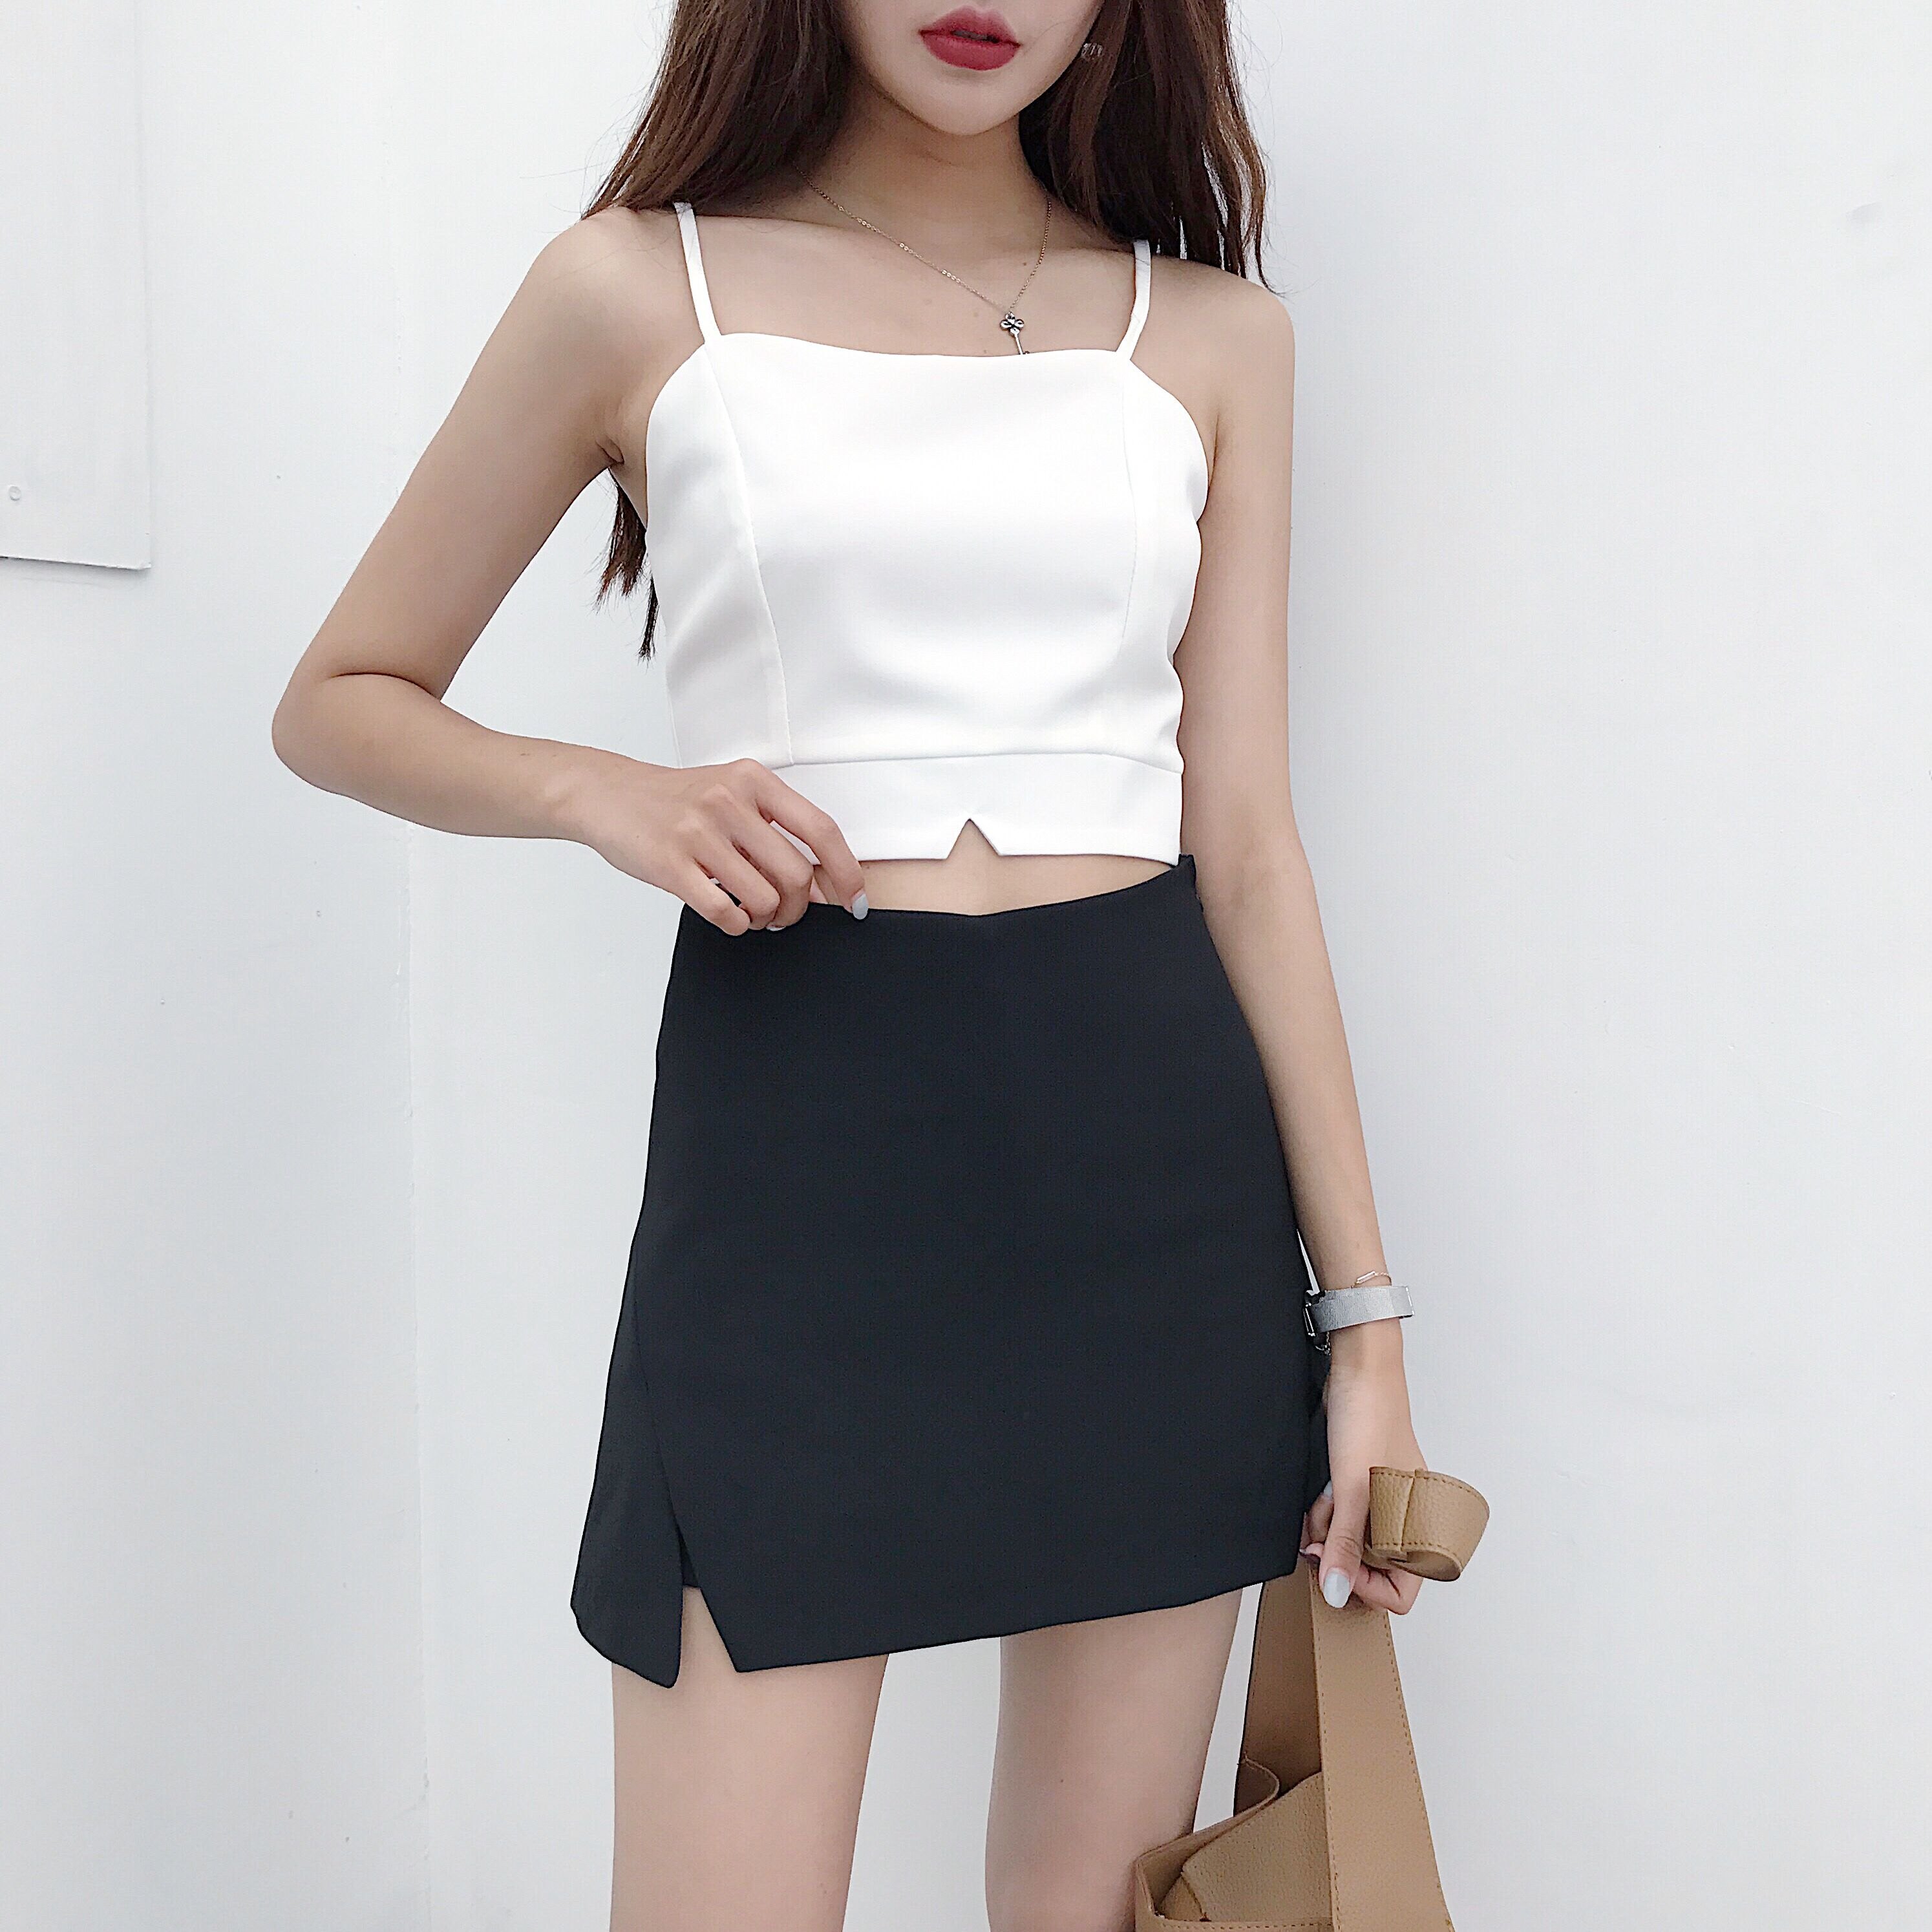 Elegant Gasolid Sexy A-line Skirt Women Bodycon High Waist Black Skirt Femme Summer 2019 White Mini Skirt Office Ol Work Wear